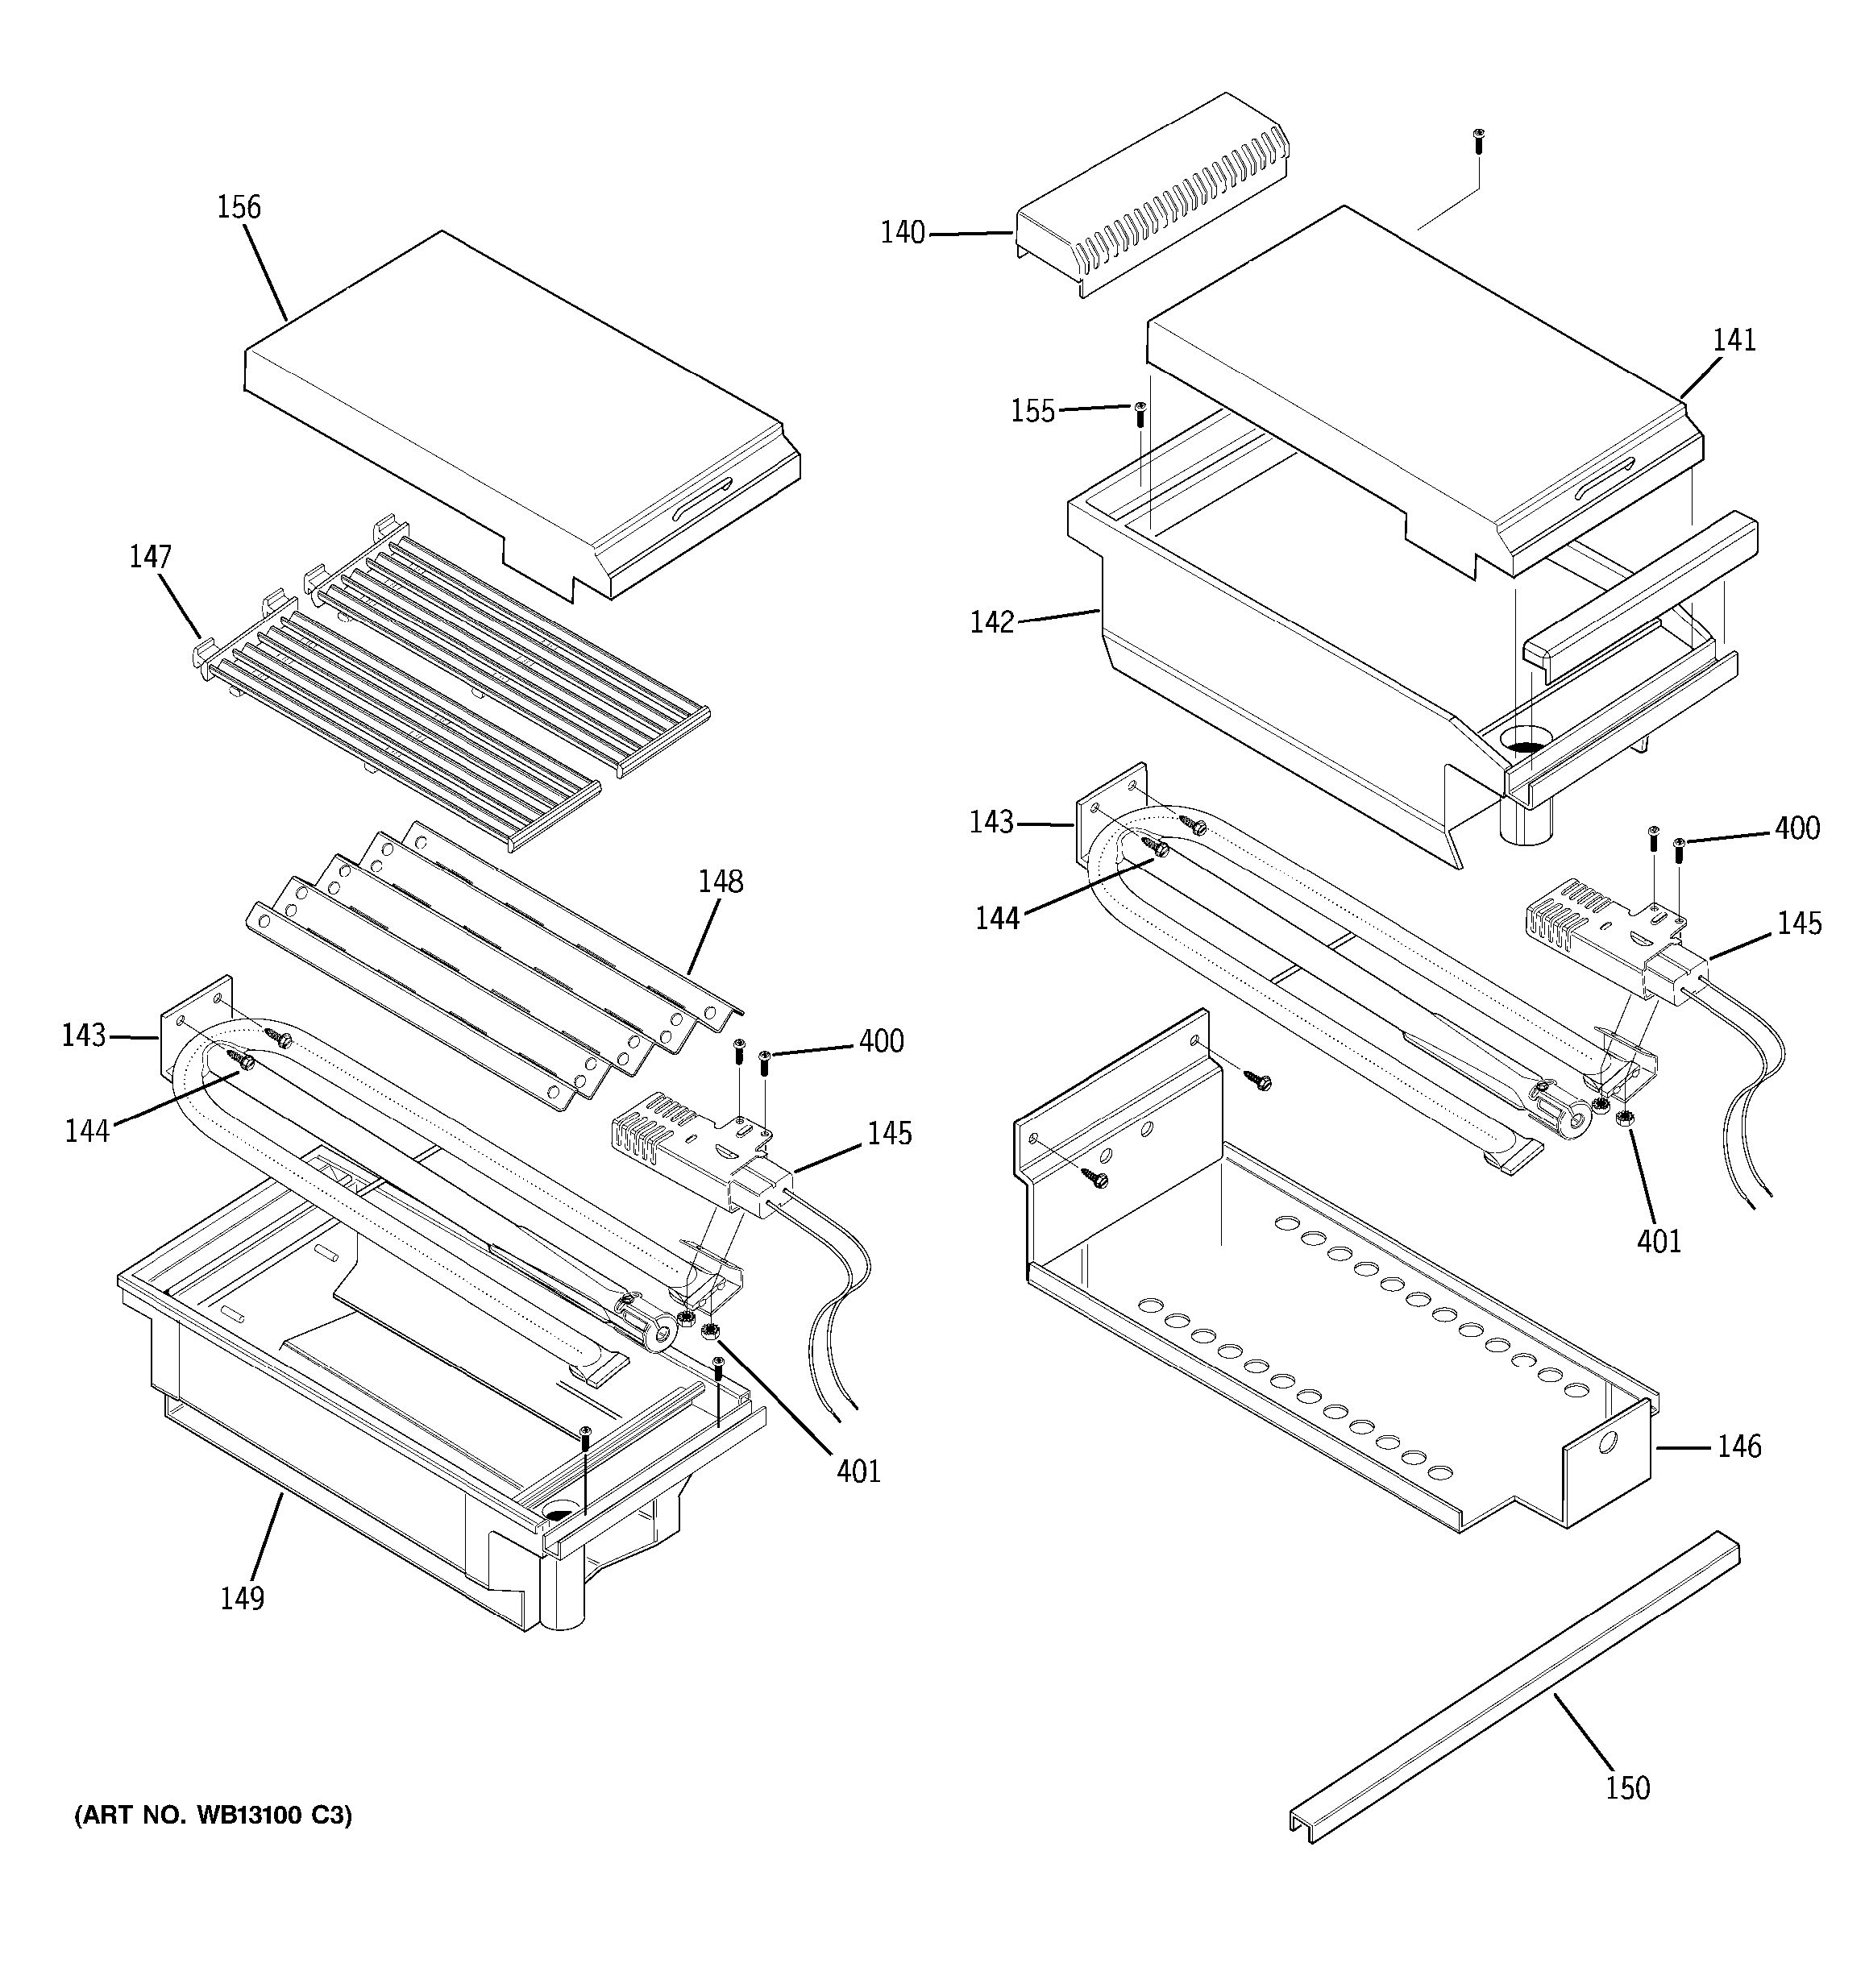 assembly view for grill  u0026 griddle assembly